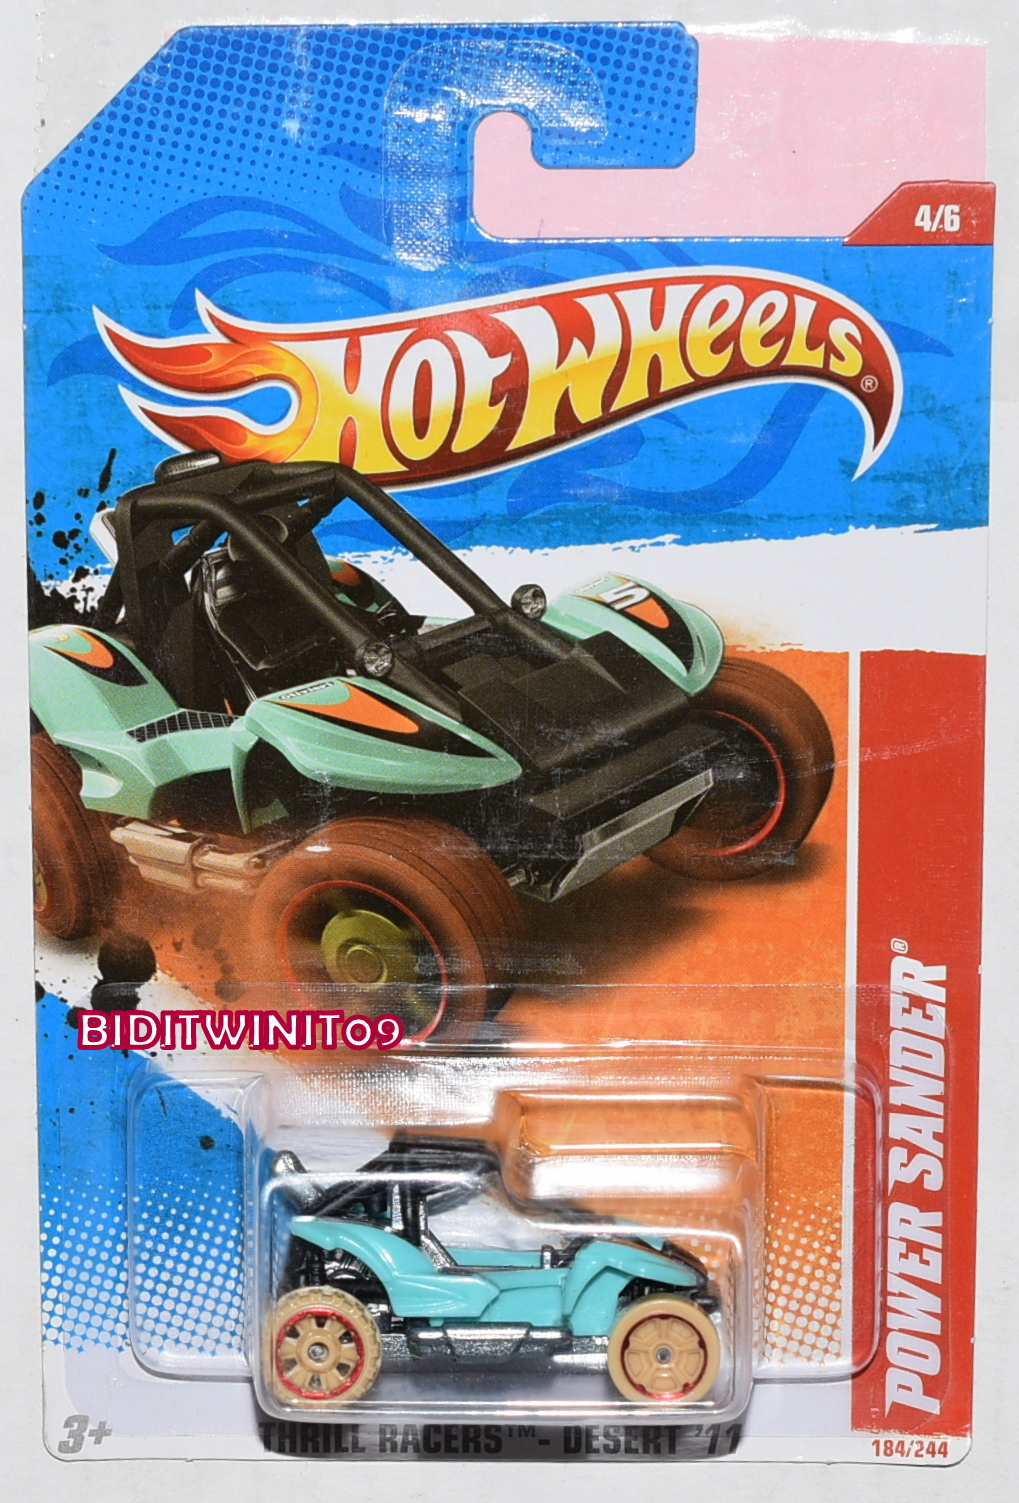 HOT WHEELS 2011 THRILL RACERS DESERT POWER SANDER #4/6